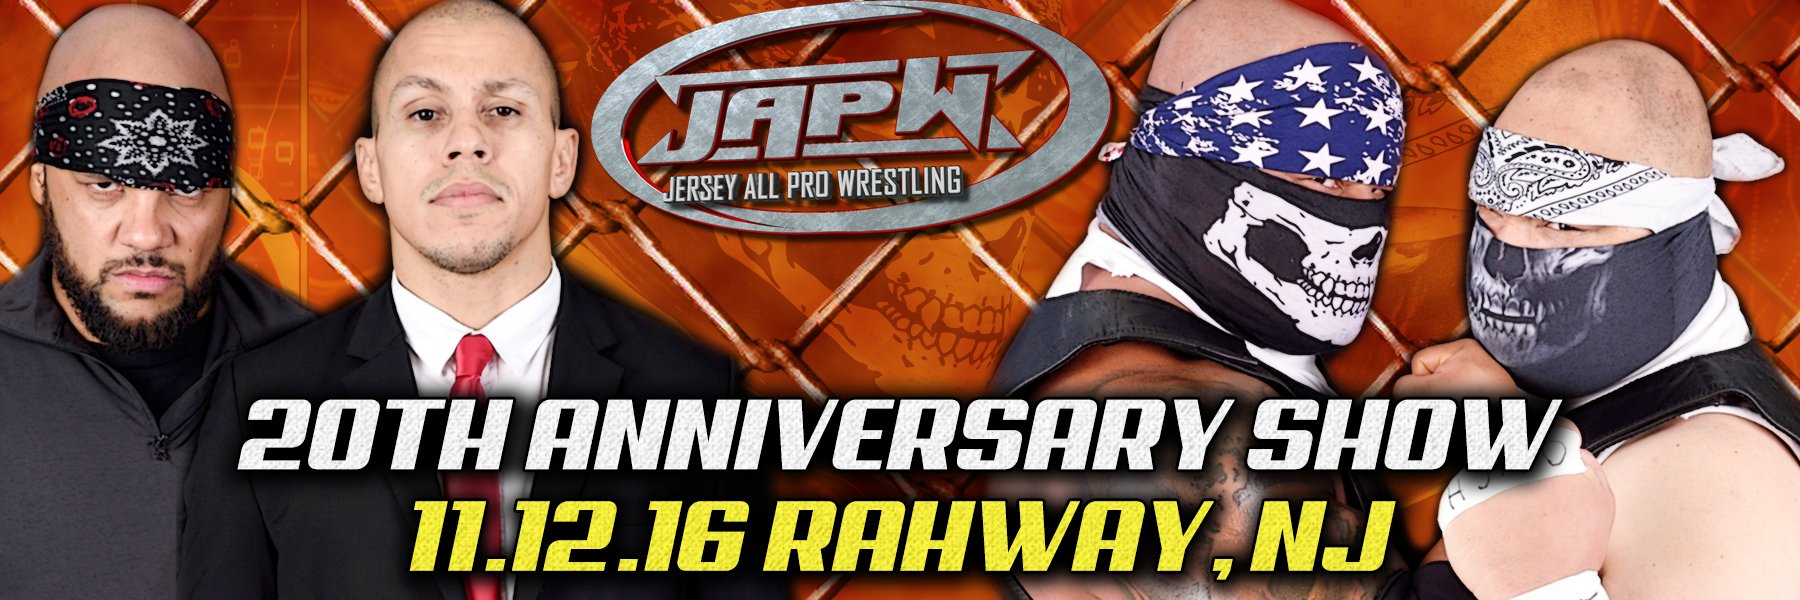 Watch the 20th Anniversary Show from Jersey All Pro Wrestling!